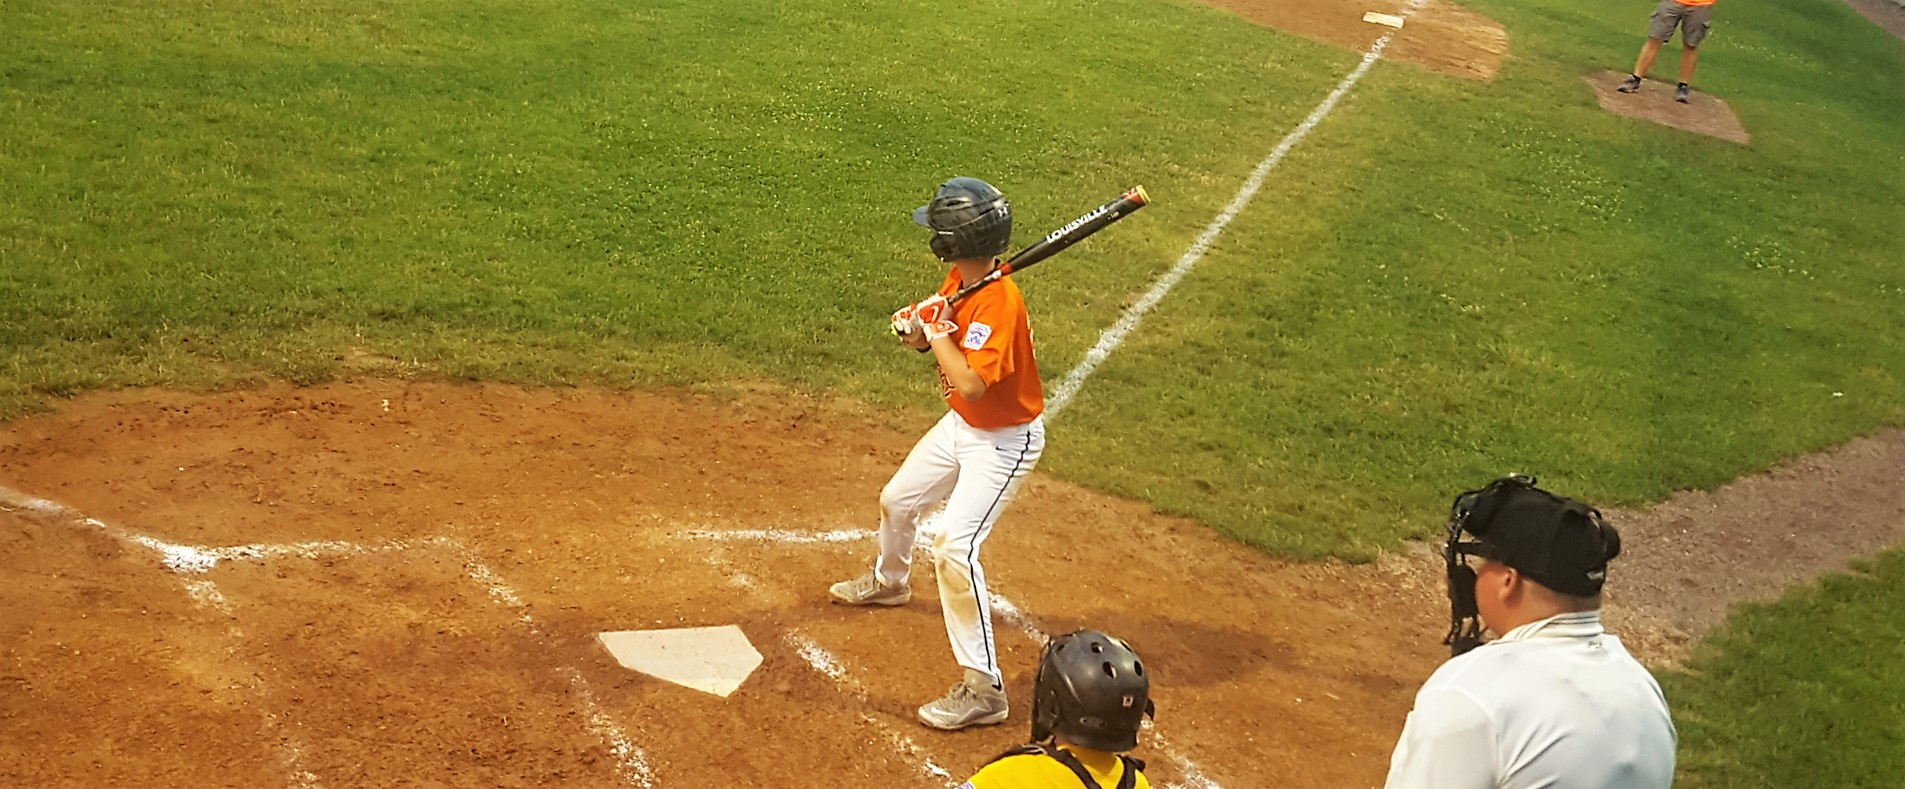 Dawson Smail of Burns & Burns had a home run, a double and two RBIs.